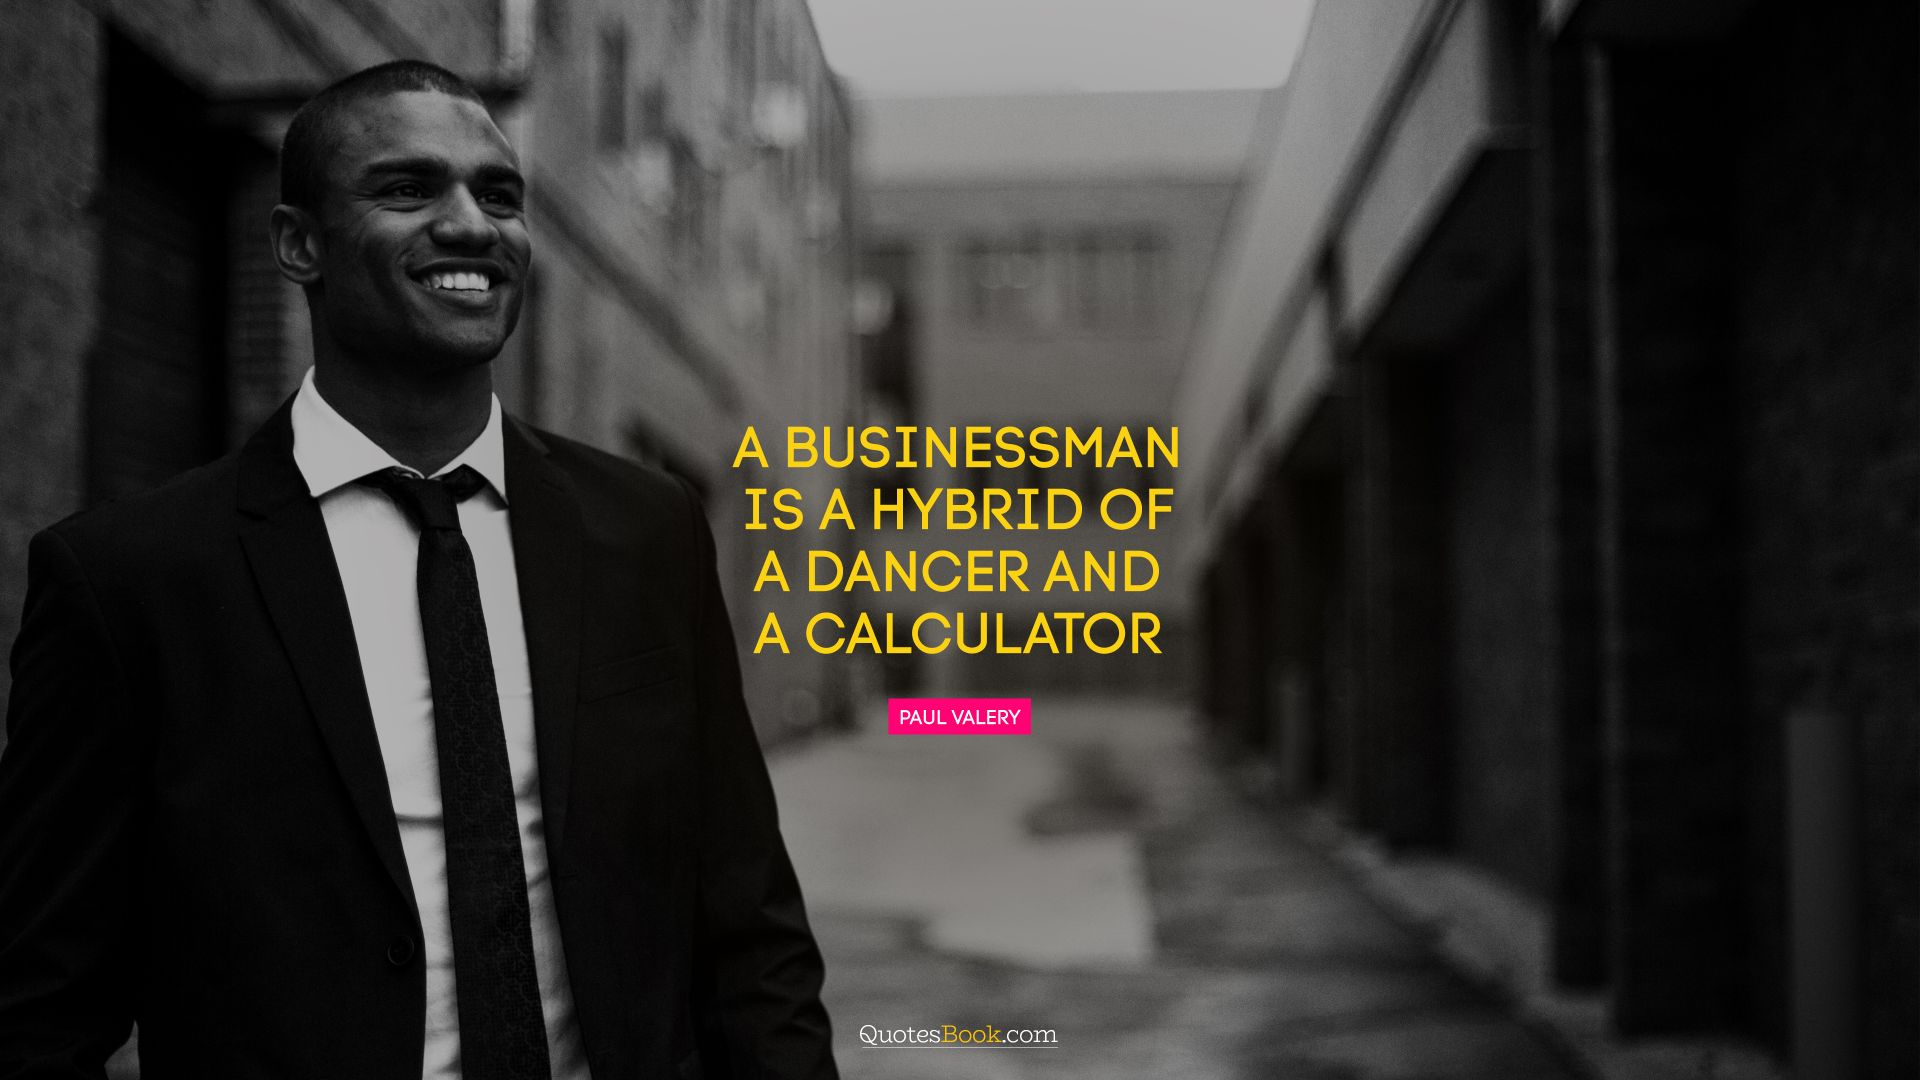 A businessman is a hybrid of a dancer and a calculator. - Quote by Paul Valery